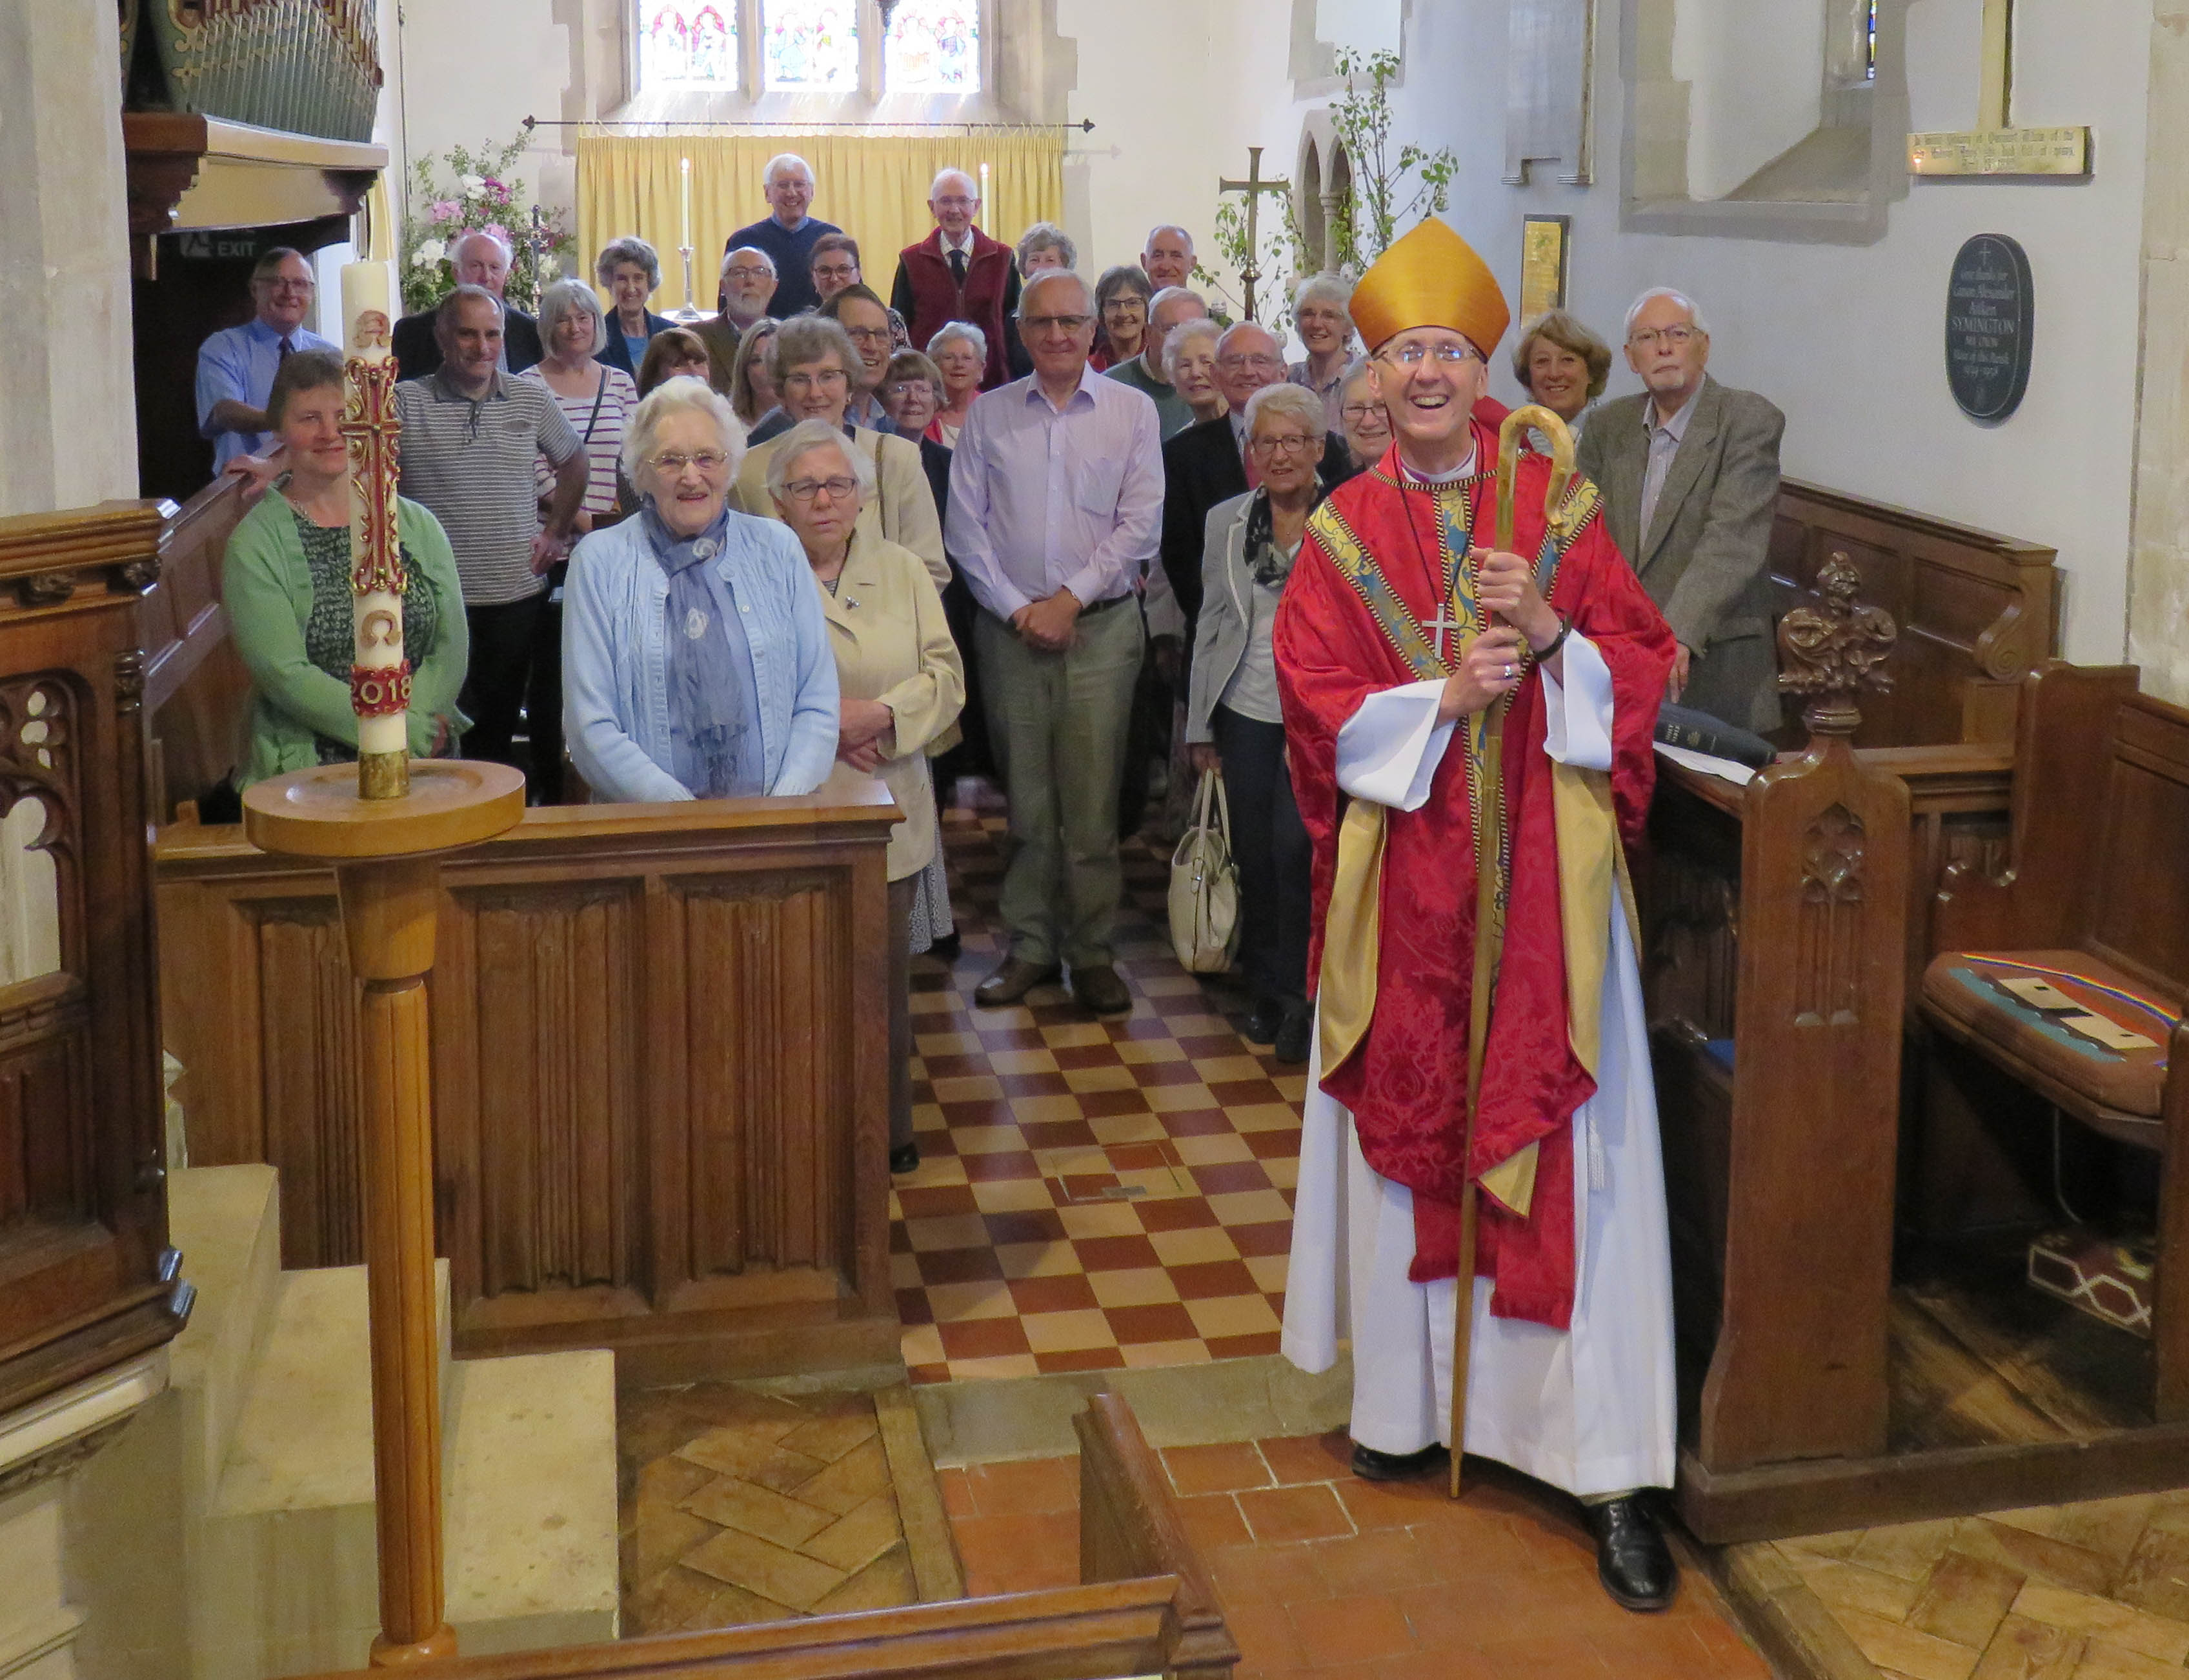 IMG 3577 Bishop of Hertford with Congreagation and M at St Ippolyts 20th May 2018-3577